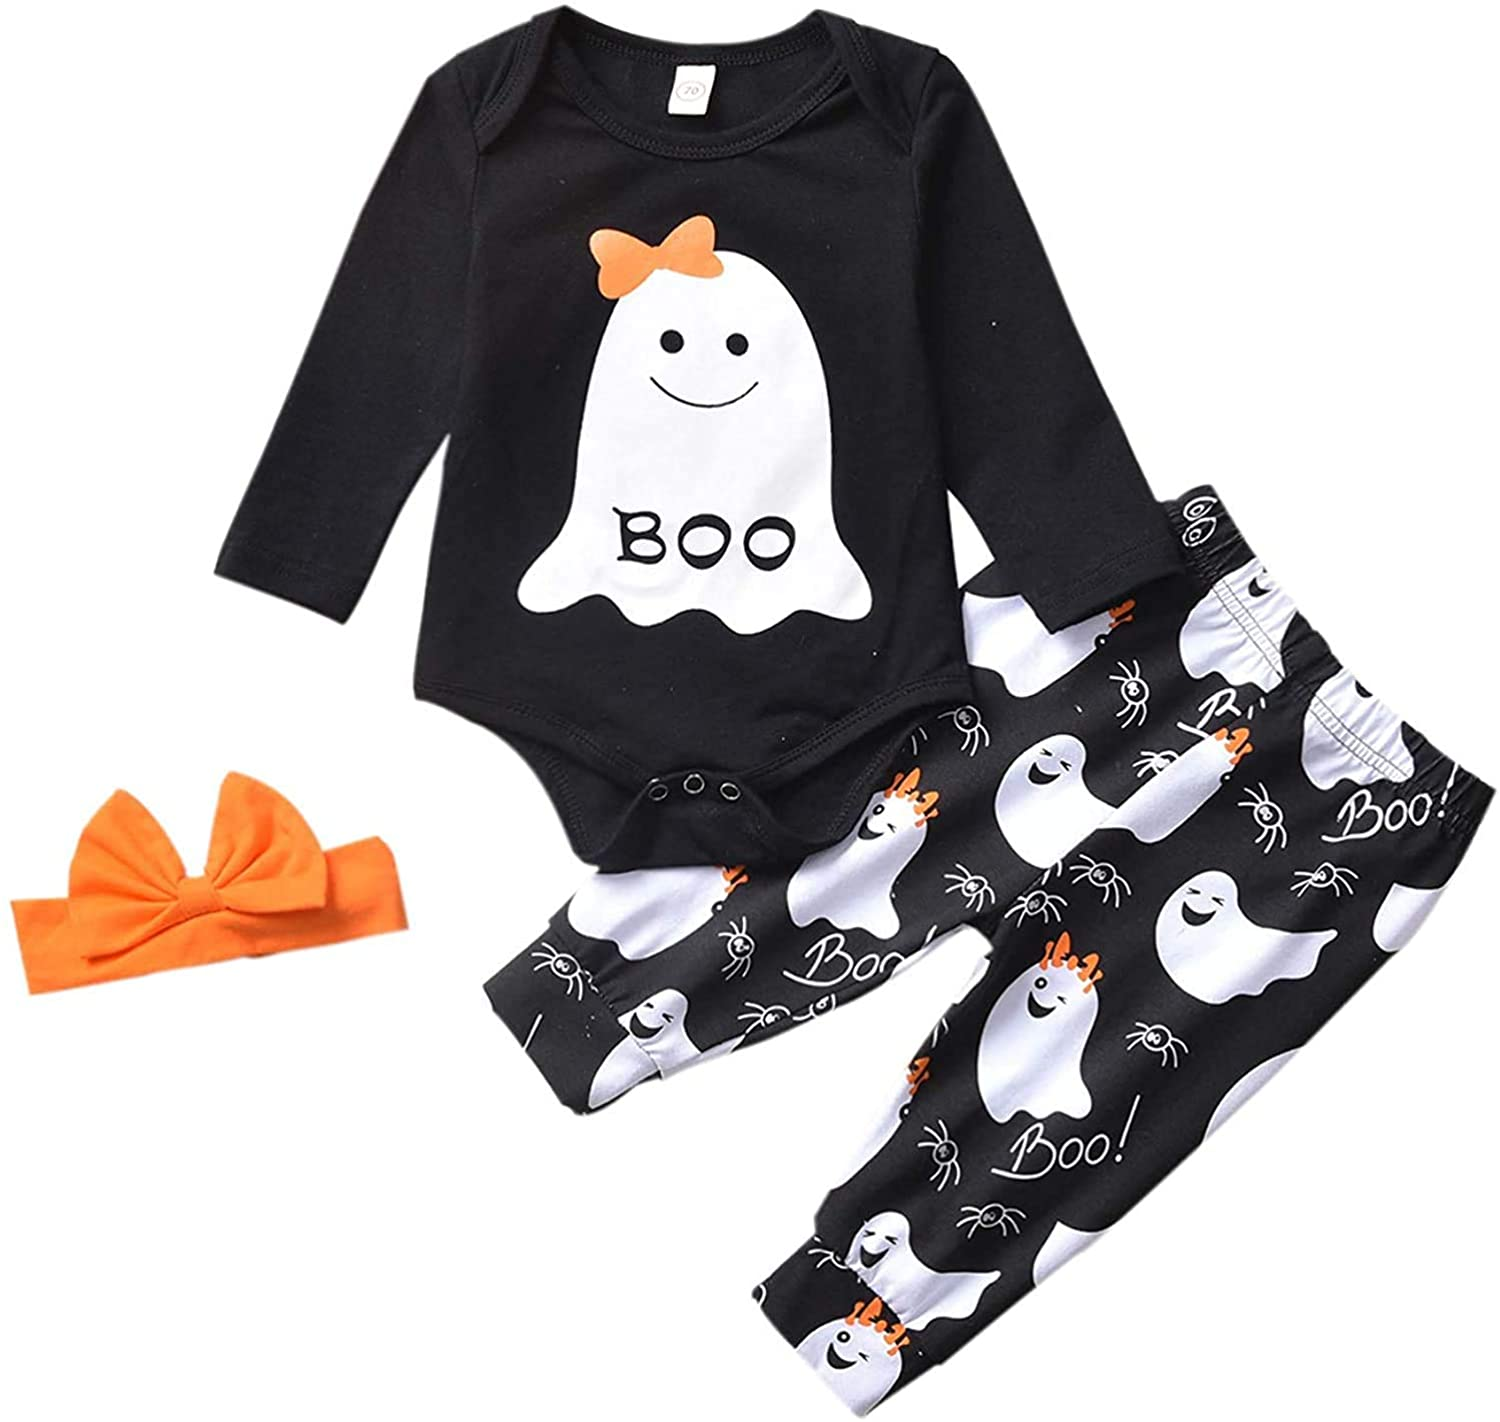 Newborn Baby Girl Halloween Outfit Boo Romper Bodysuit and Ghost Pants with Orange Headband 3PCS Clothes Set